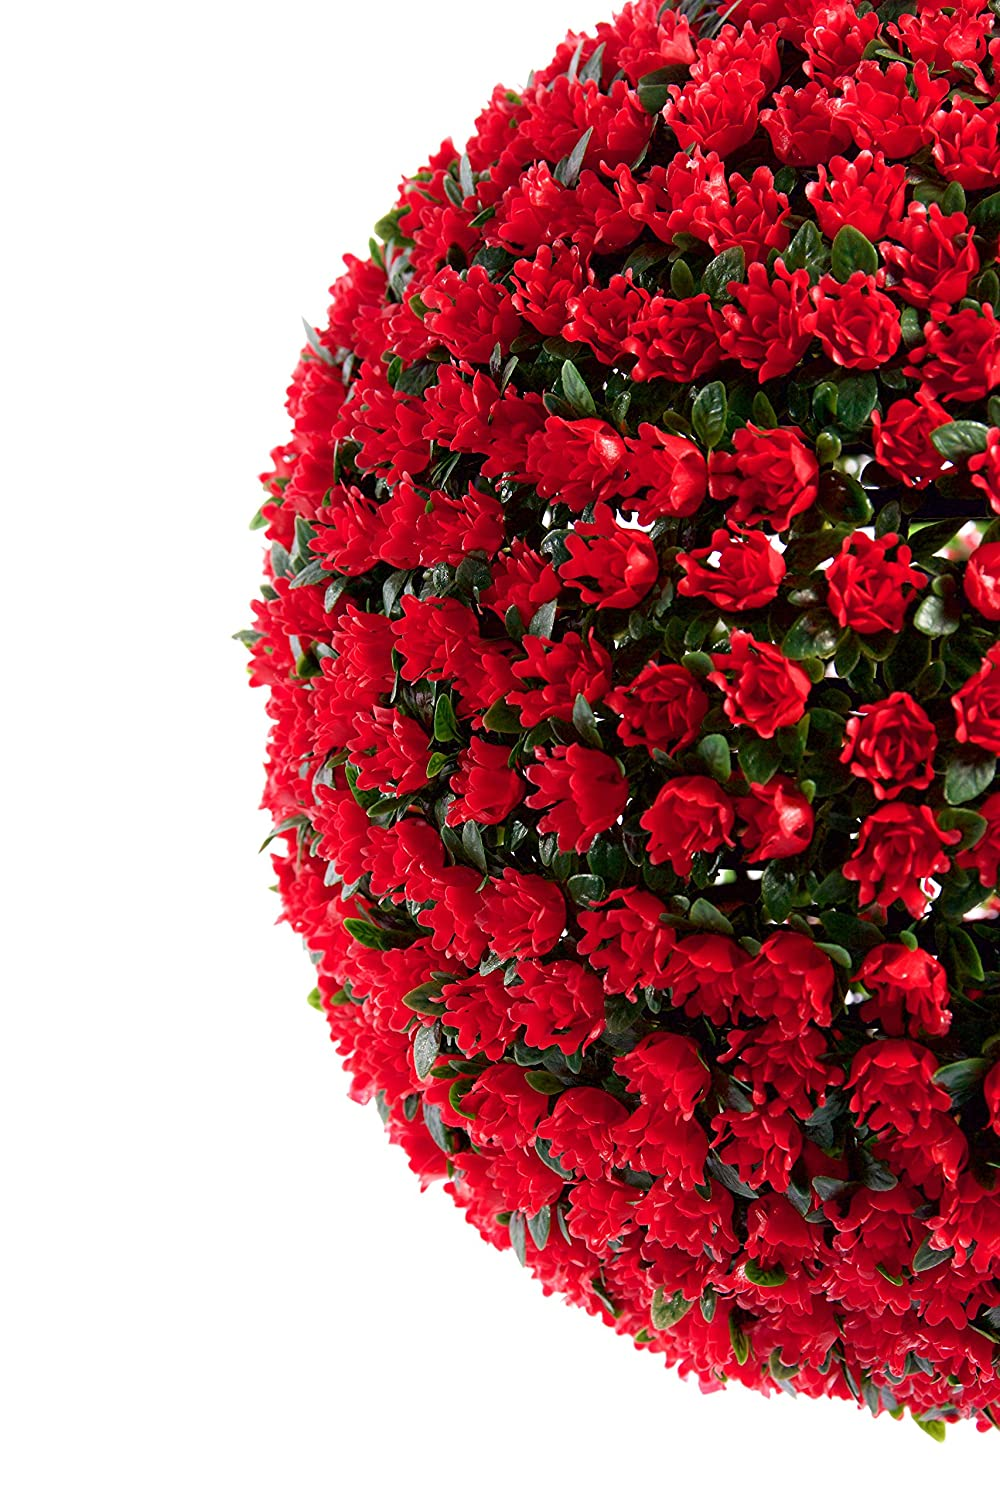 TM 38cm Red Rose Topiary Hanging Flower Balls **UV Fade Protected** Best Artificial 2